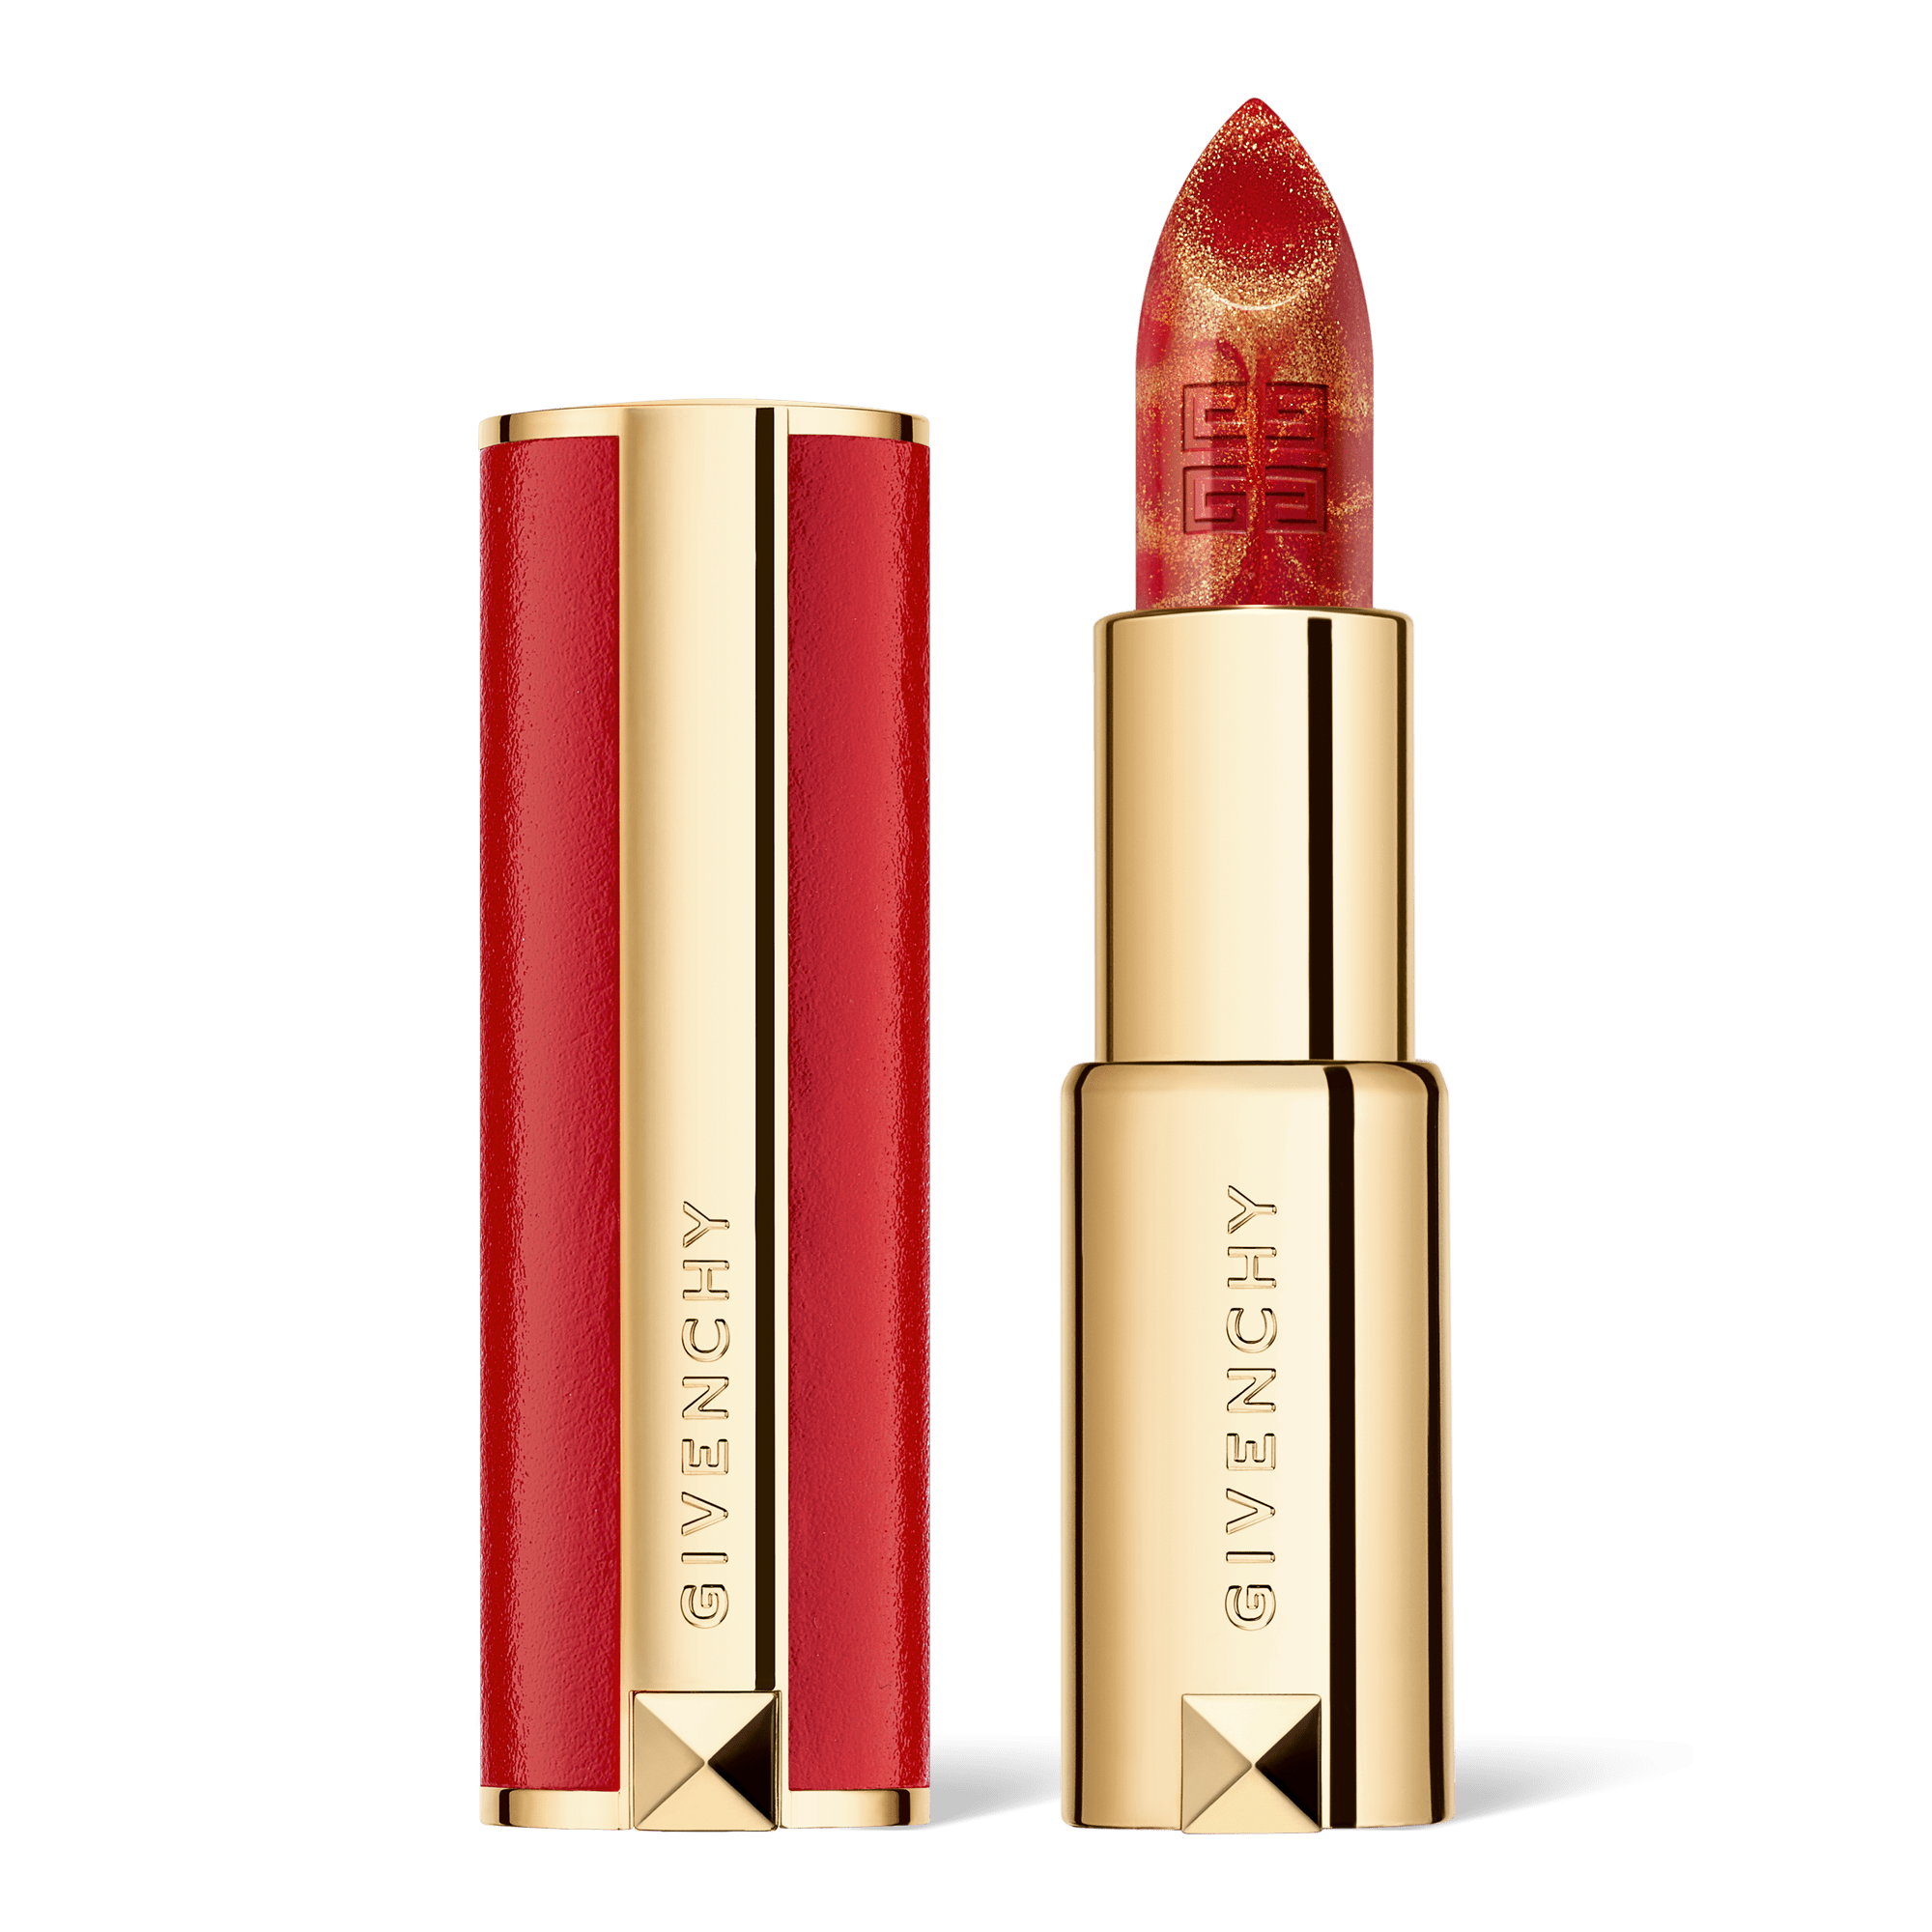 Givenchy CNY 2021 Le Rouge Marble Edition Lipstick, 888 Golden Red